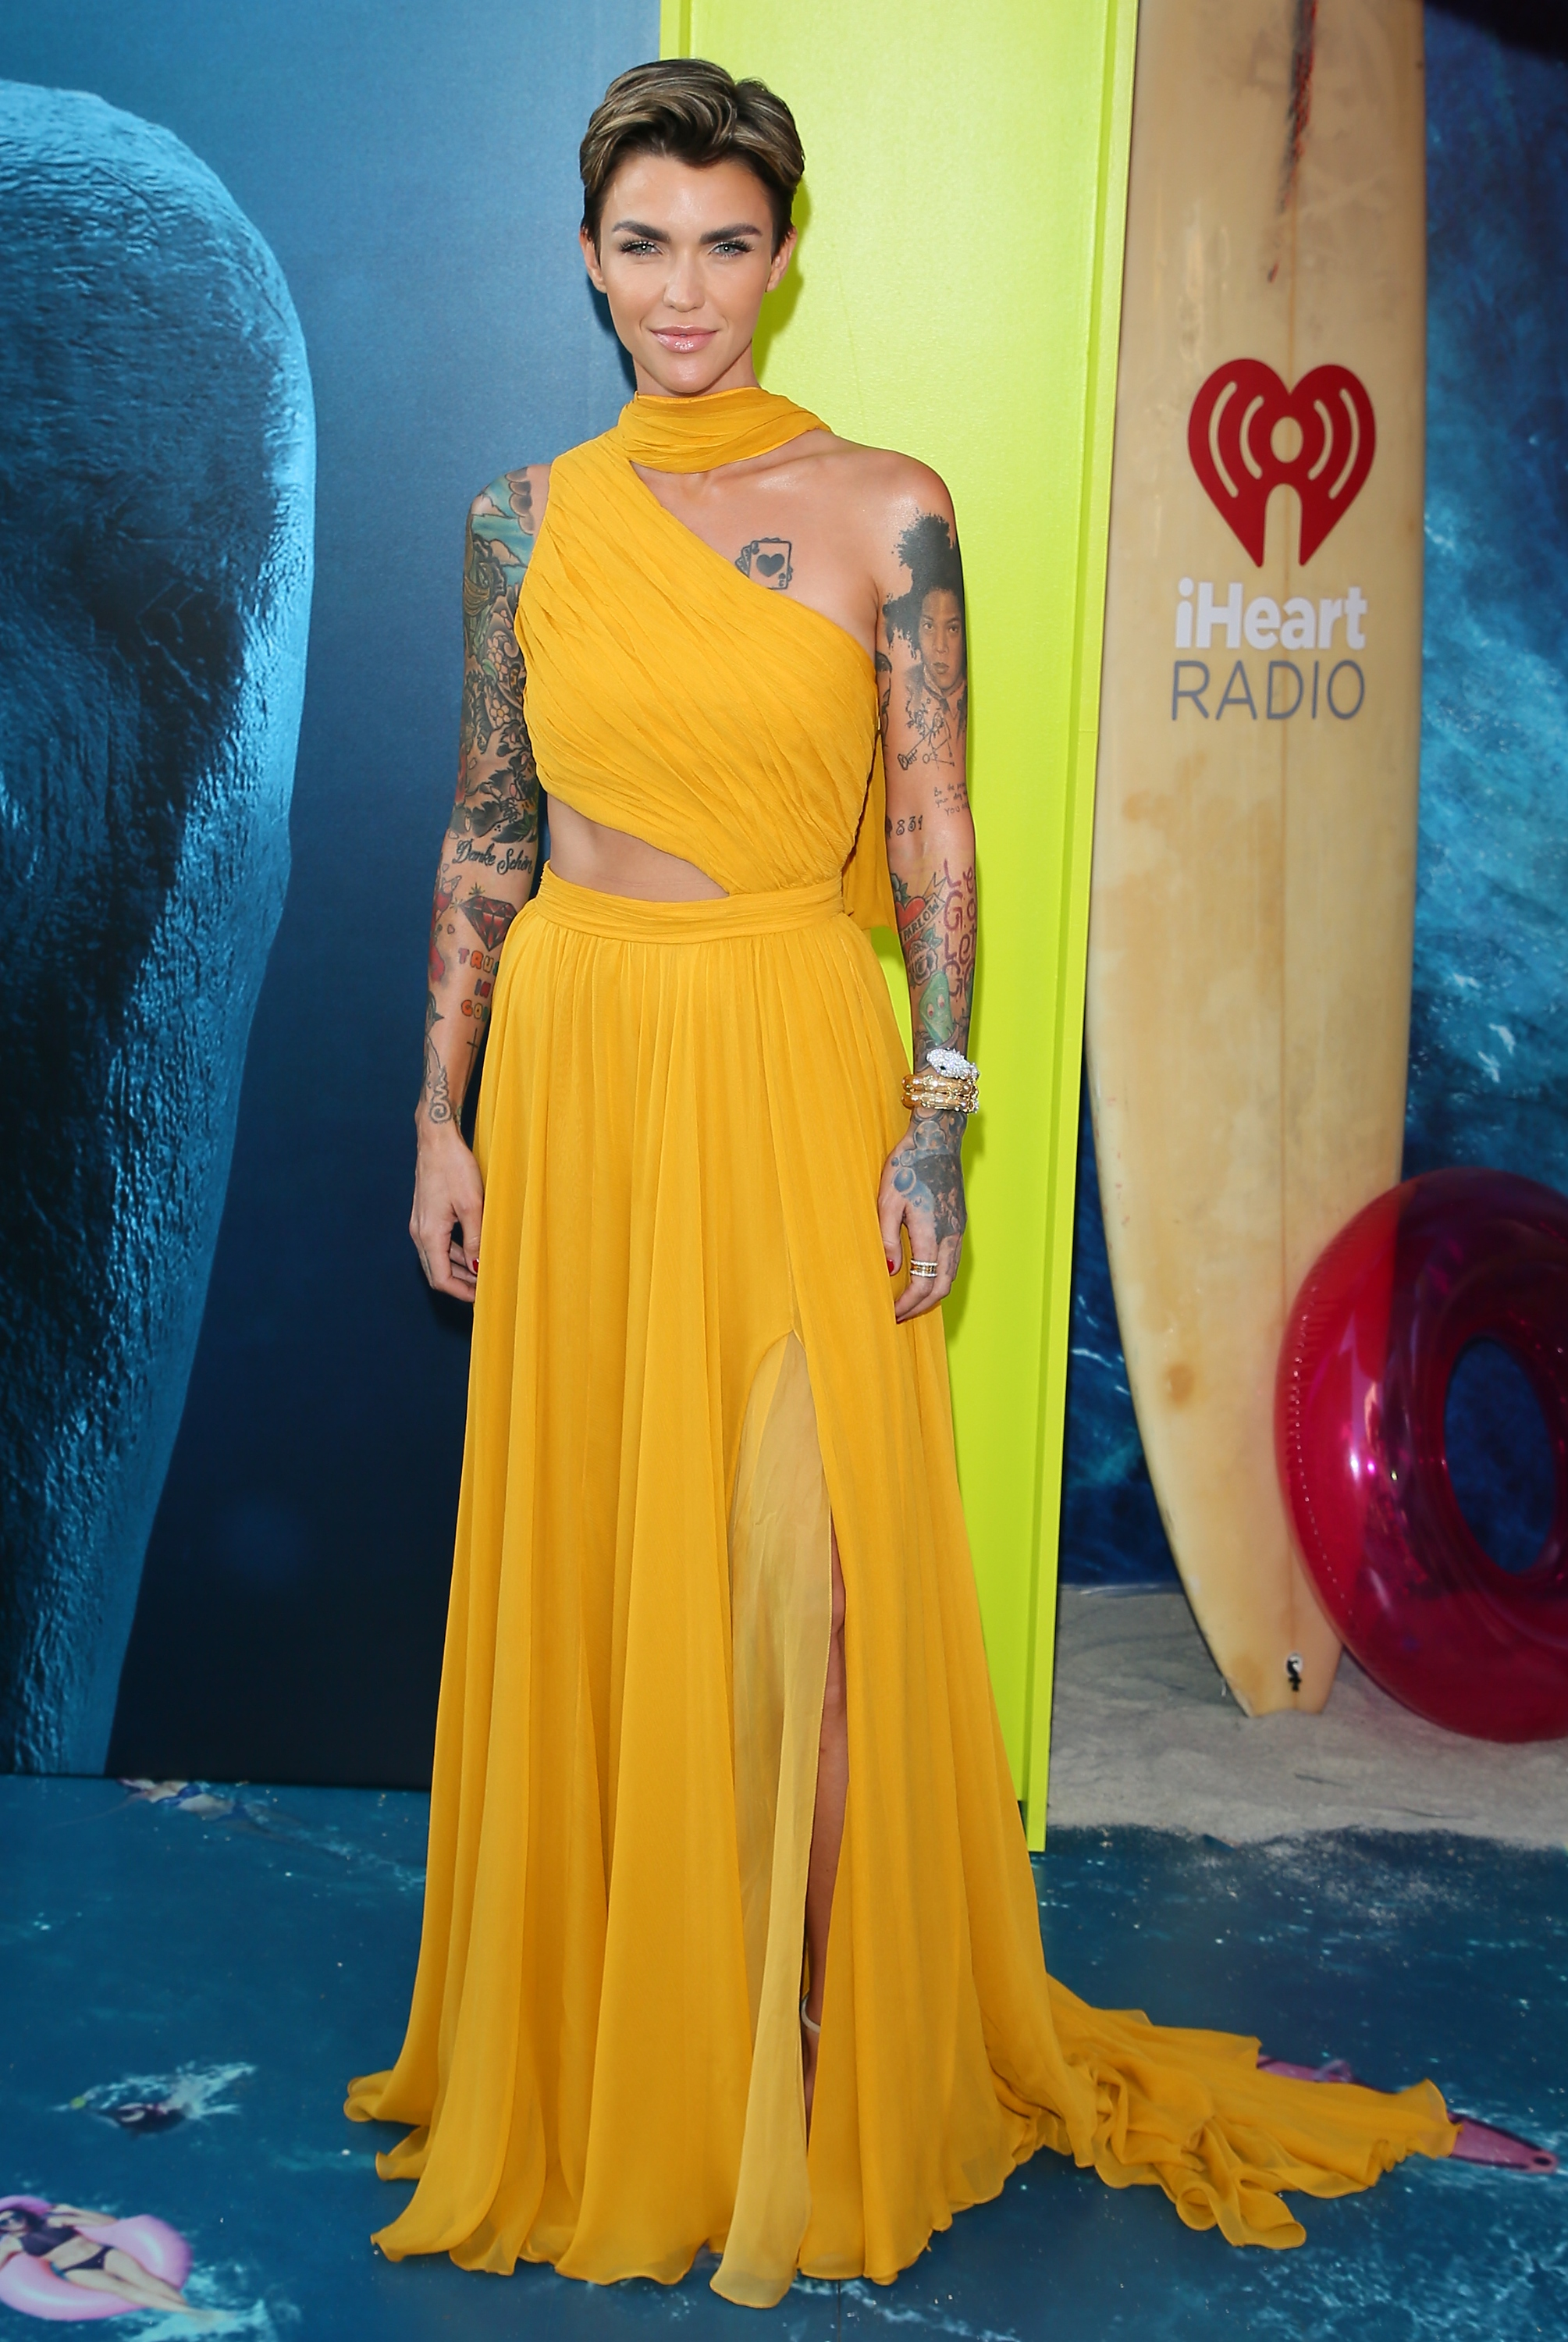 "<p>Australian Model-turned-actress Ruby Rose has undergone many style transformations throughout her decade in the spotlight.</p> <p>From her <a href=""https://style.nine.com.au/2017/09/26/09/29/style_ruby-rose-beauty-secrets"" target=""_blank"" title=""edgy, short cropped 'do"" draggable=""false"">edgy, short cropped 'do</a> and love of luxury designs from the likes of Dion Lee and Burberry which have won her International style fame and <a href=""https://style.nine.com.au/2017/05/02/08/15/met-gala-red-carpet-2017/13"" target=""_blank"" title=""a place on the Met Gala guest list"" draggable=""false"">a place on the Met Gala guest list</a>, to her days as a VJ for MTV Australia when straight, black bangs and tartan dresses were her signature look, she has never been afraid to push the boundaries in the style stakes.</p> <p>With the news that the the 32-year-old has just been named as the first-ever LBGT actress to take on the role of Batwoman for a yet-to-be-named series for the CW network, we are sure she will put her own rebellious sartorial stamp on the batsuit.</p> <p>""This is something I would have died to have seen on TV when I was a young member of the LGBT community who never felt represented on tv and felt alone and different. Thank you everyone. Thank you god,"" Rose shared with her <a href=""https://www.instagram.com/rubyrose/?hl=en"" target=""_blank"" title=""12.8 million followers on Instagram."" draggable=""false"">12.8 million followers on Instagram.</a><br /> <br /> In honour of Ruby Rose's historic appointment we look back at the style evolution of Ruby Rose.</p>"